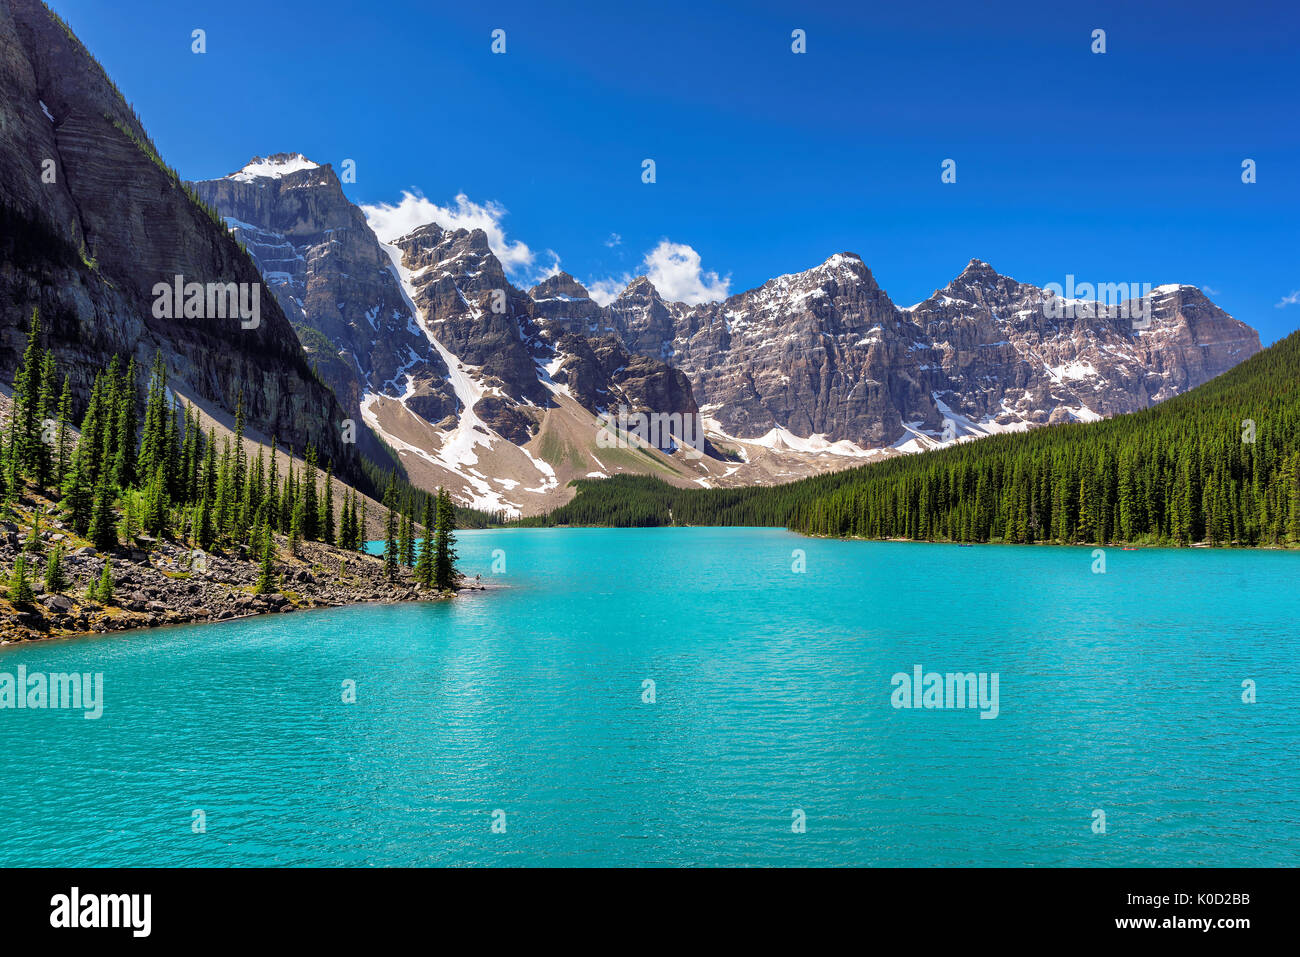 Moraine Lake - Famous place in Rocky Mountains, Canada. - Stock Image